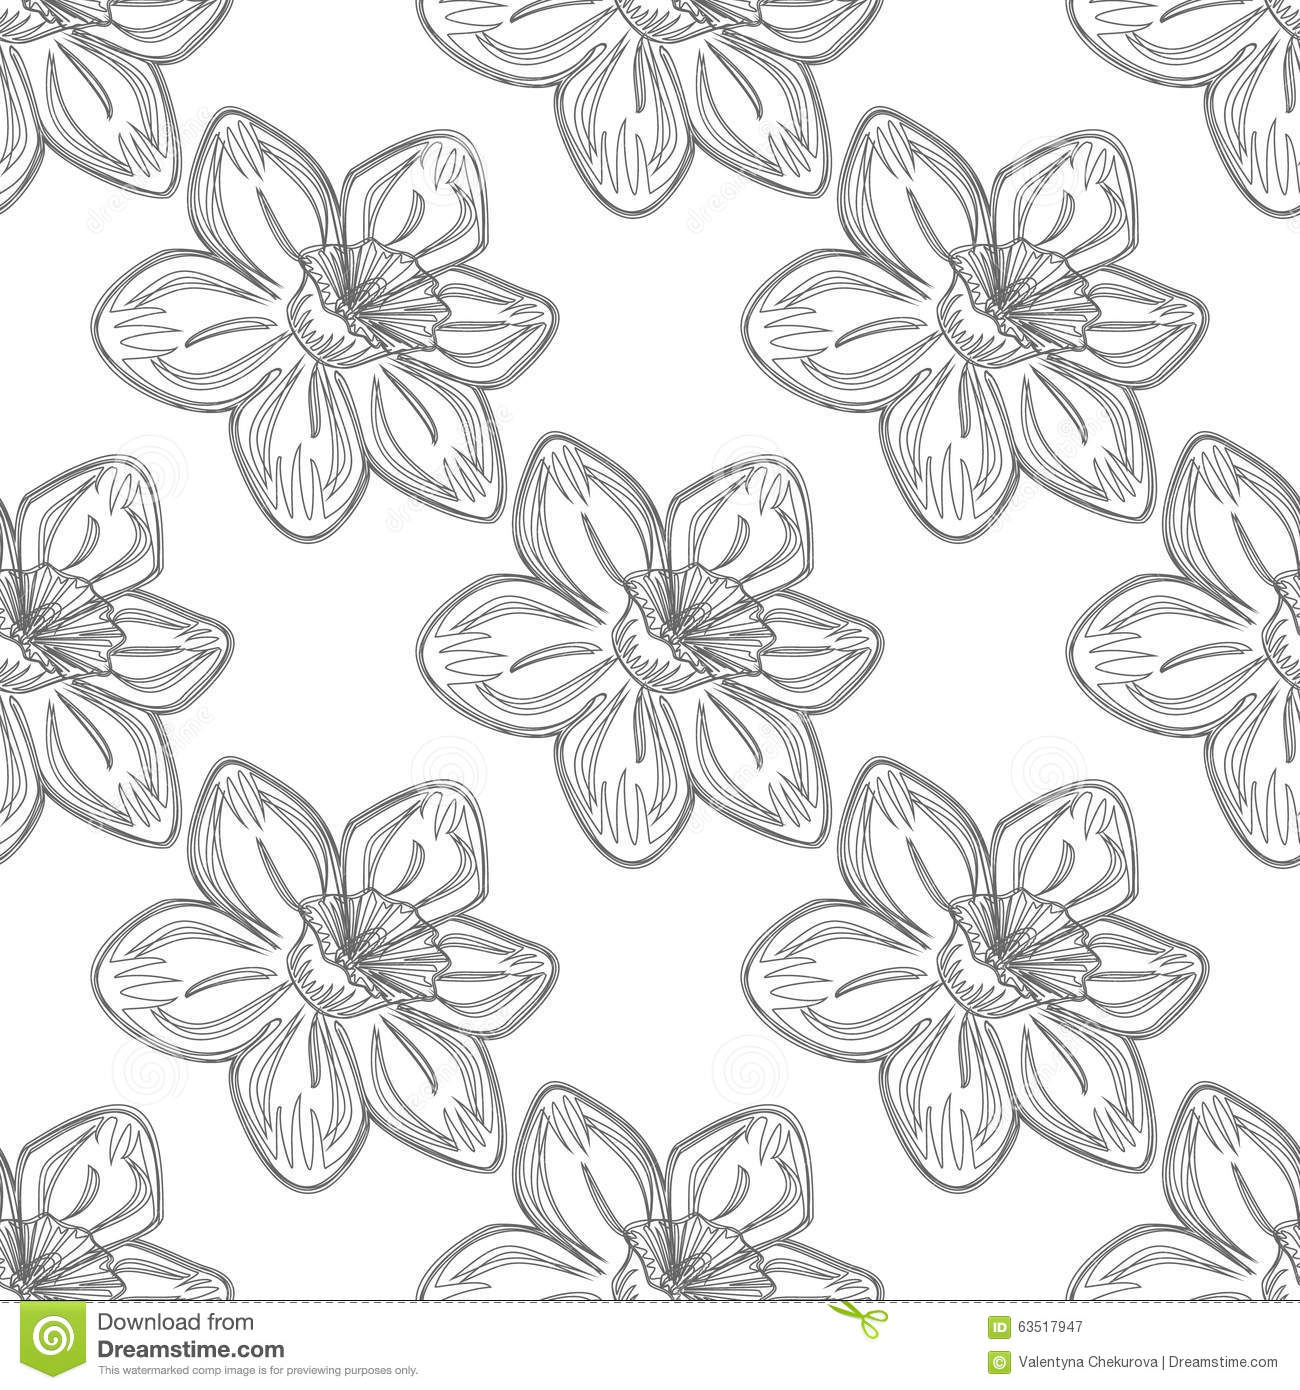 Vector Line Drawing Flower Pattern : Seamless vector flower pattern background with flowers